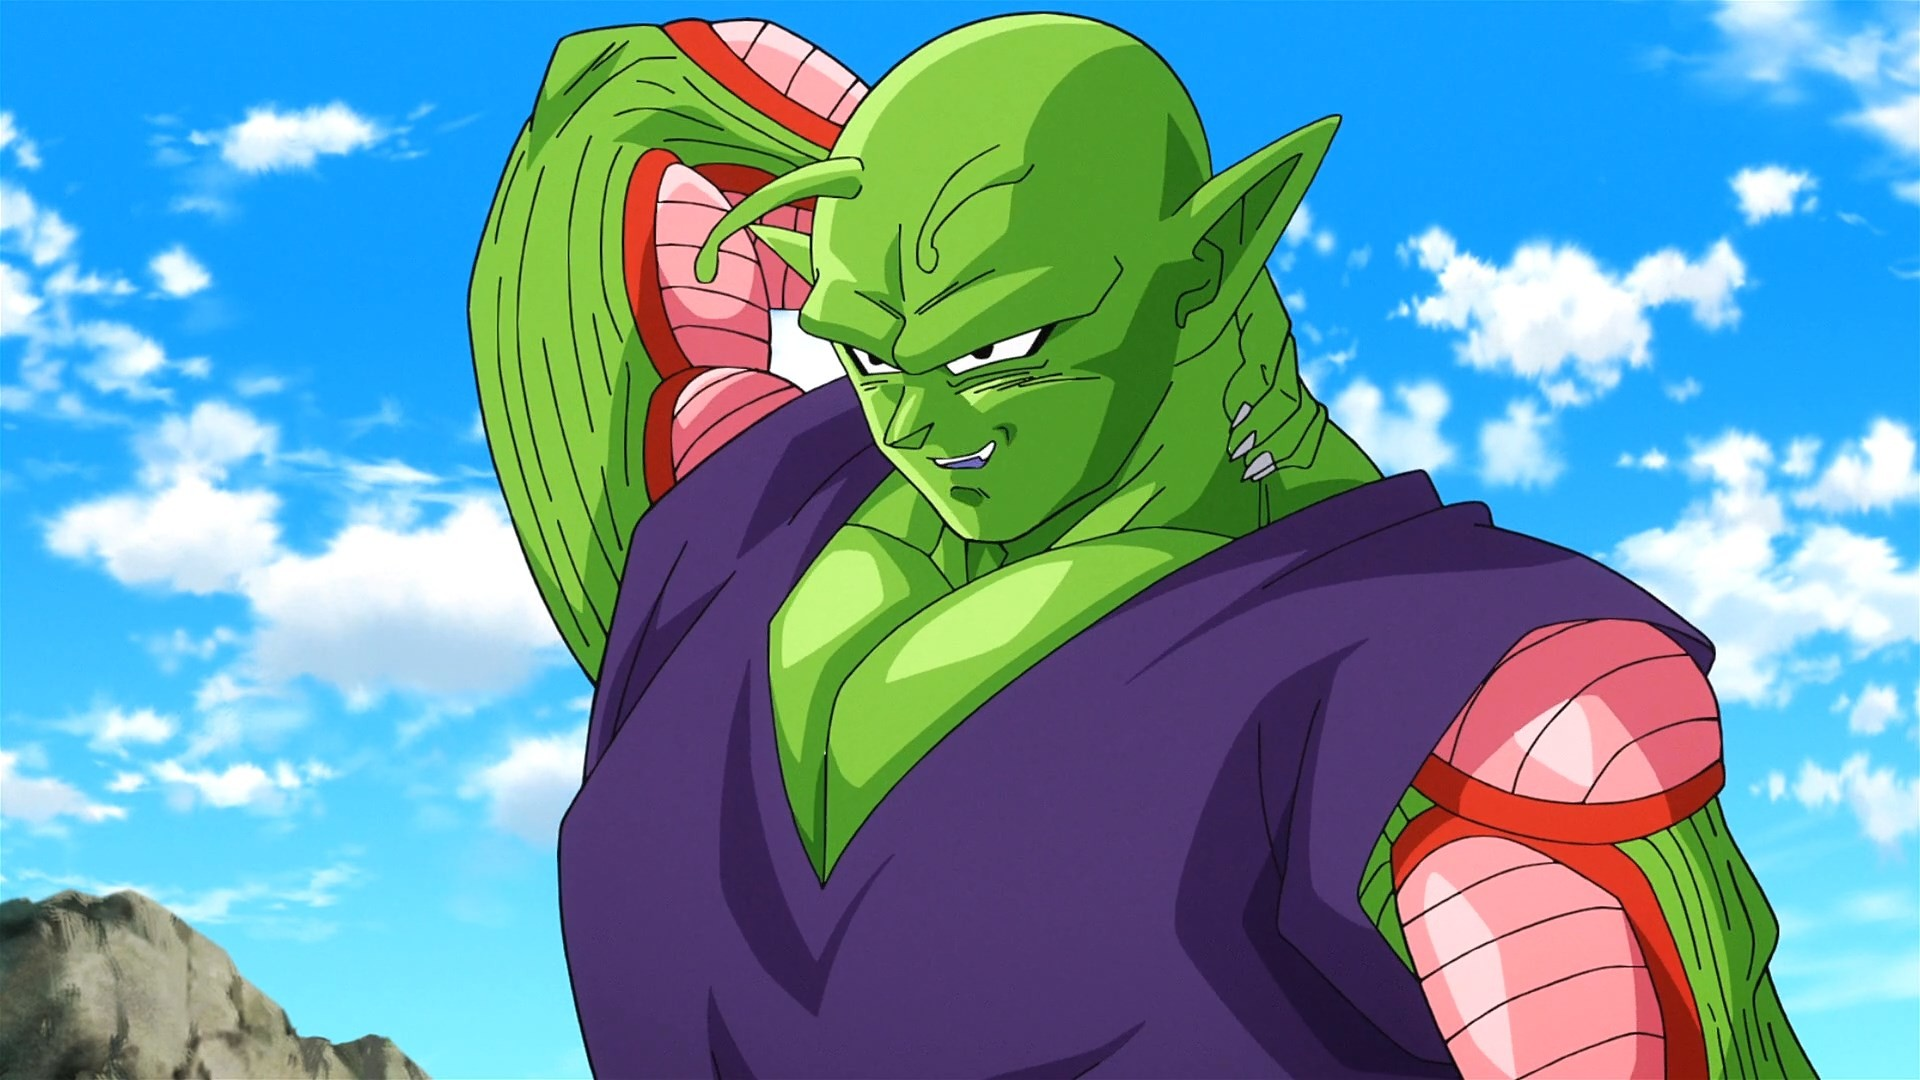 Dragon ball z piccolo wallpaper 68 images - Dragon bale z ...